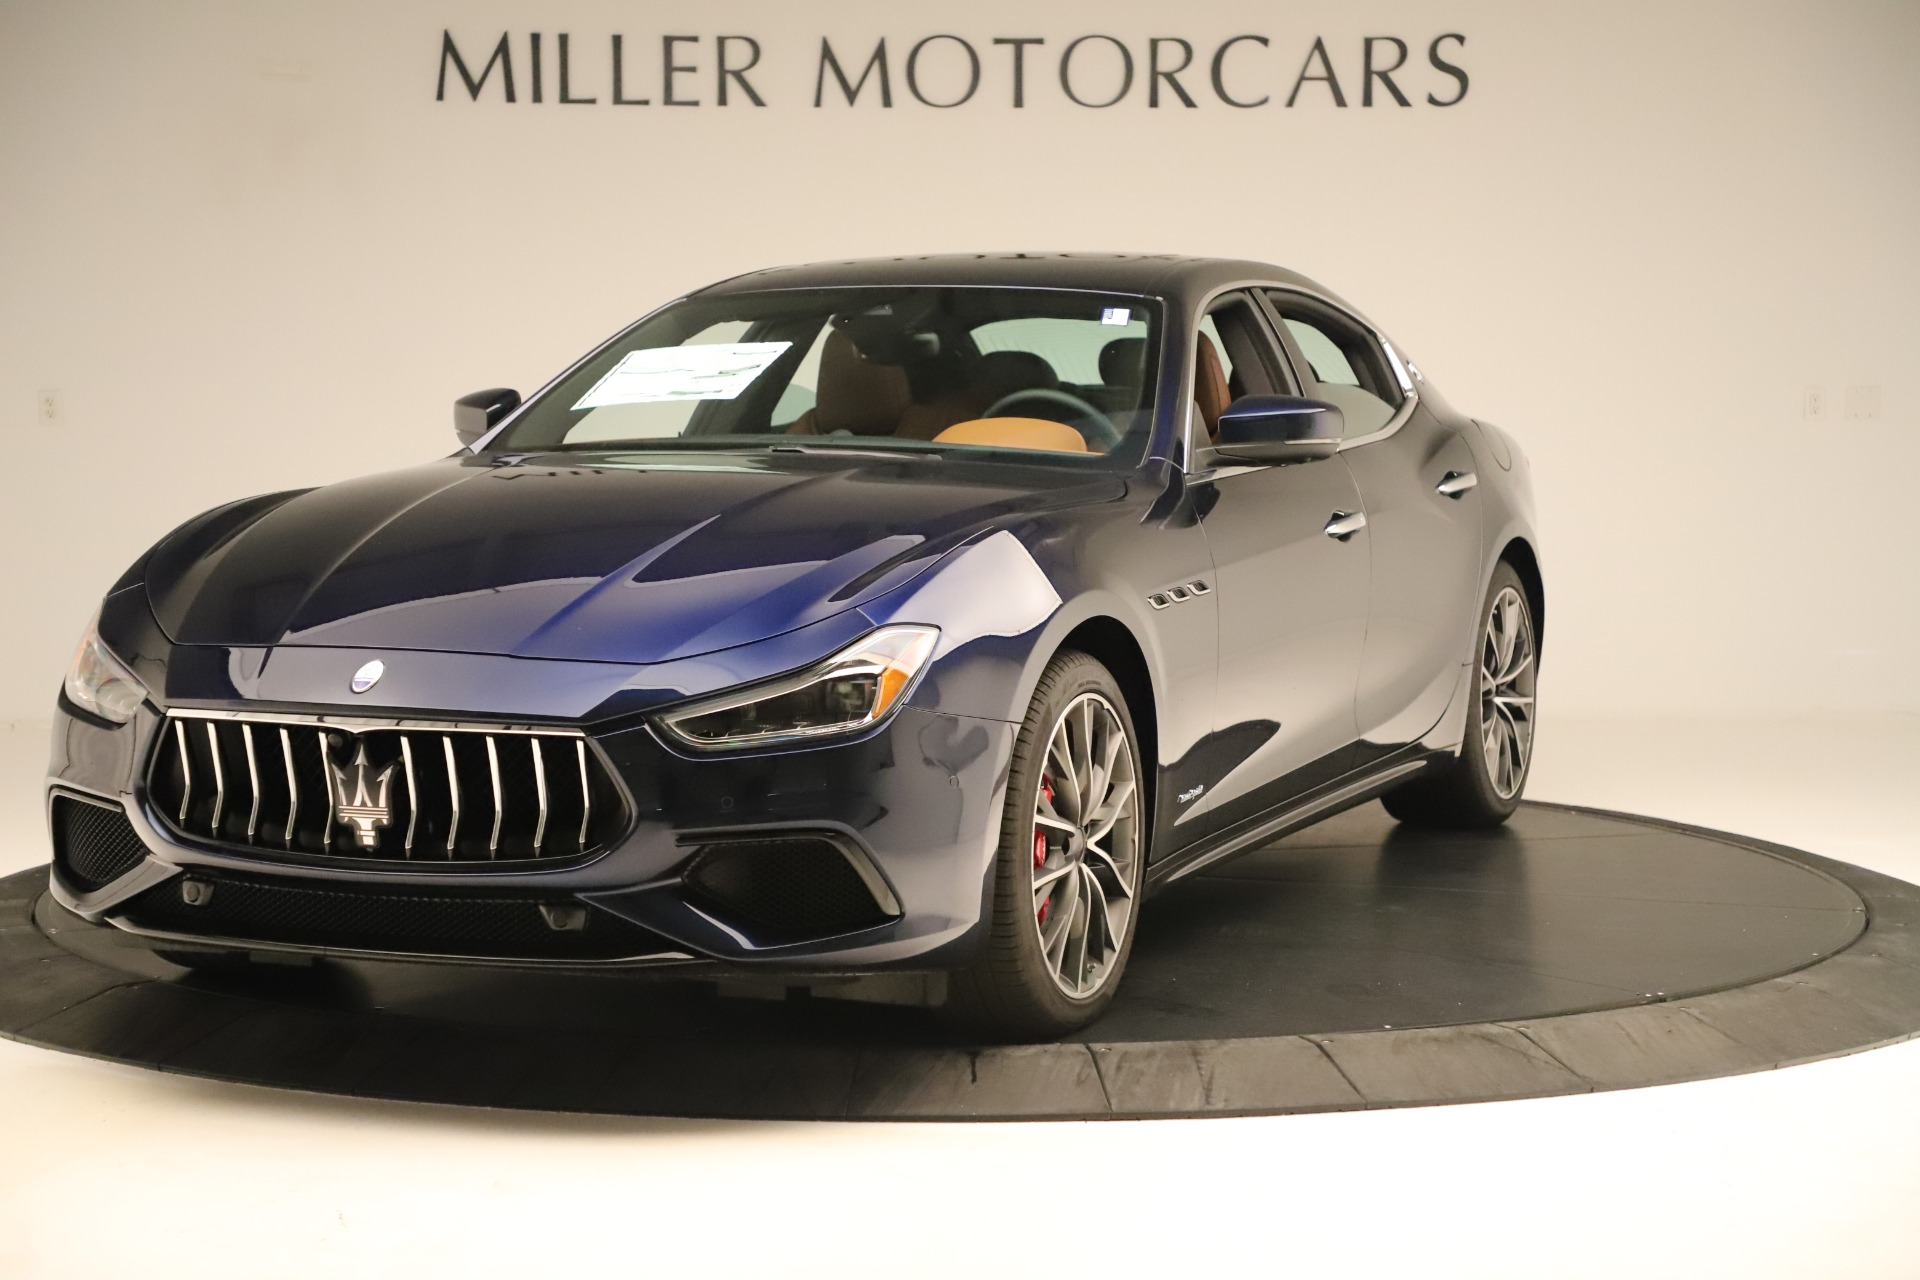 New 2019 Maserati Ghibli S Q4 GranSport for sale Sold at Maserati of Westport in Westport CT 06880 1